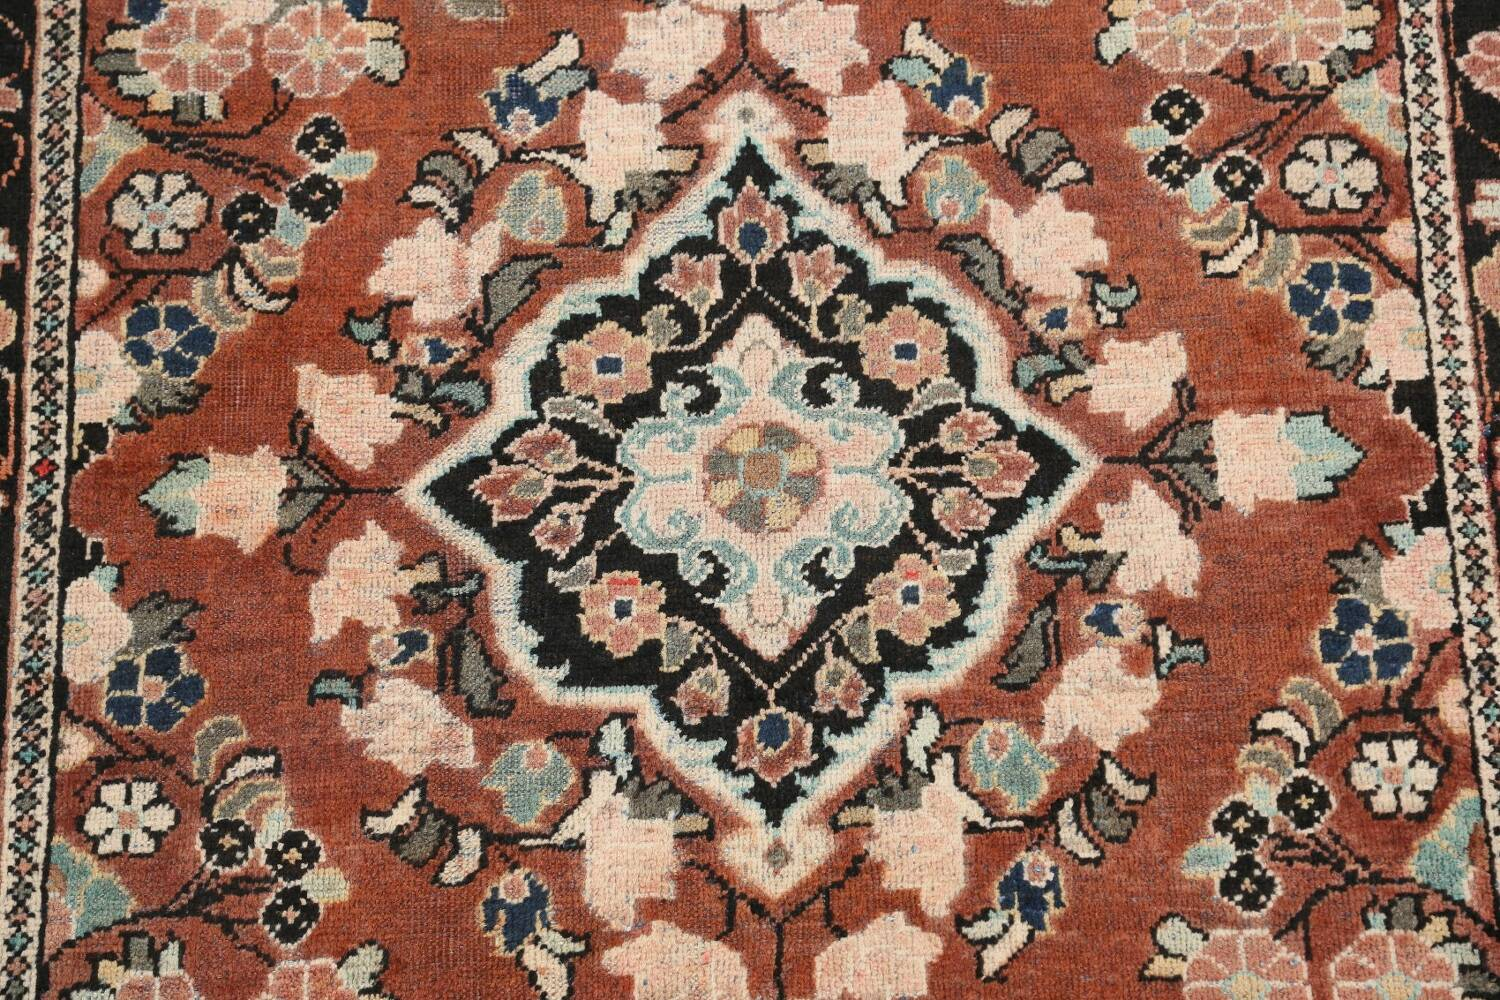 Antique Floral Mahal Persian Area Rug 4x6 image 4